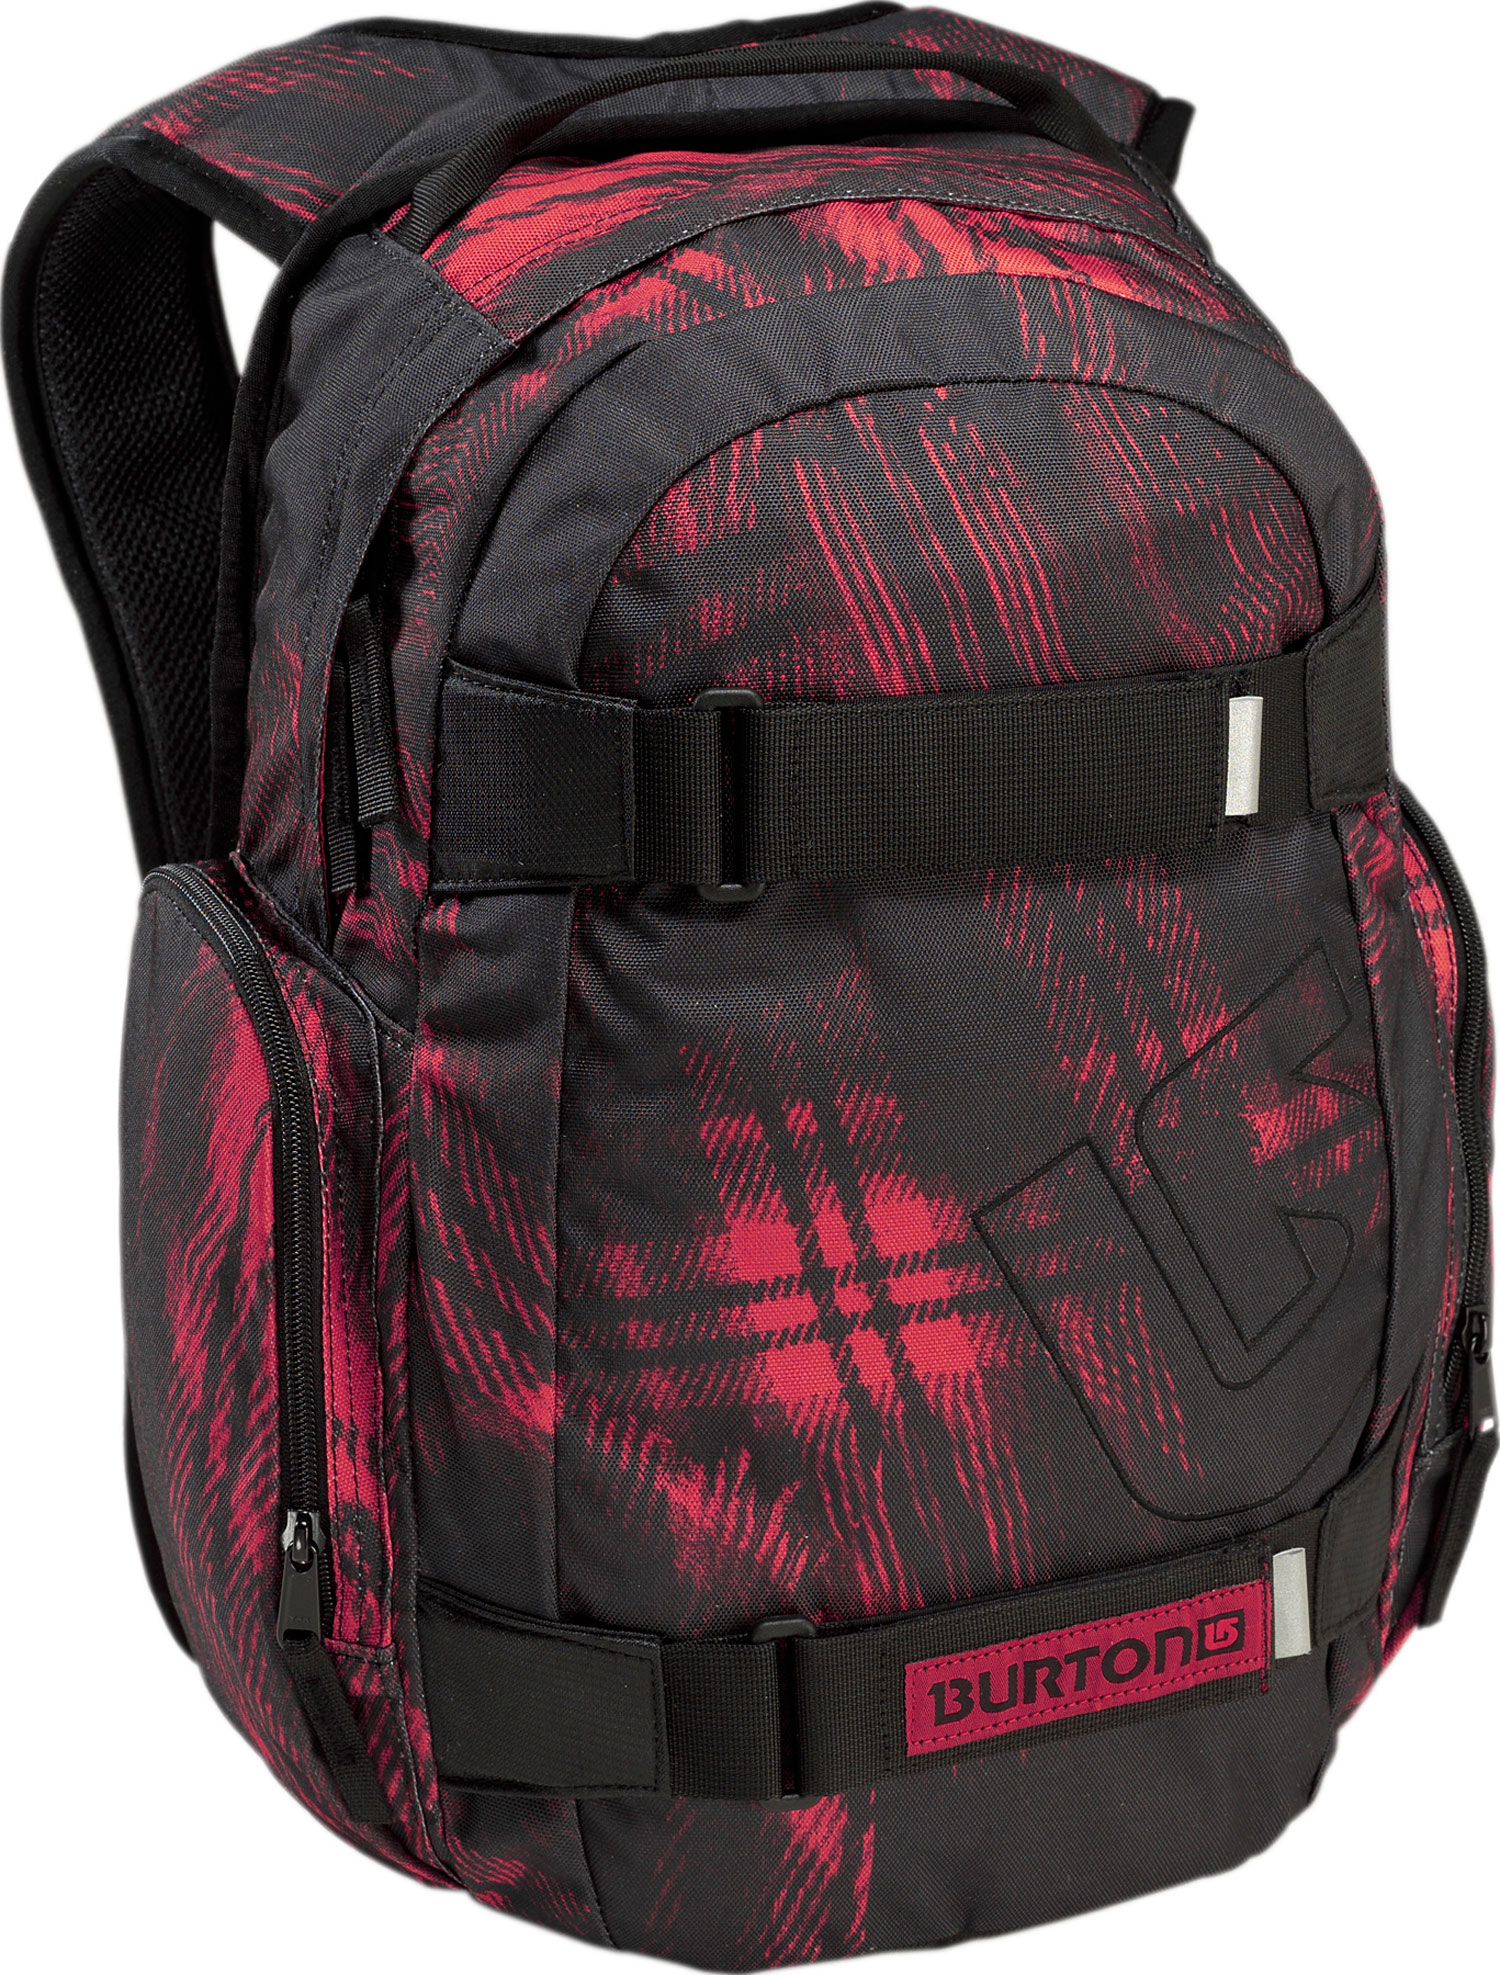 Snowboard Simple skate pack with added bang for your buck - the Burton Treble Yell Backpack.Key Features of the Burton Treble Yell Backpack: 23L [17in x 11.5in x 7in] [43cm x 29.25cm x 18cm] Weight: 1.25 lbs [0.57 kg] Fabrication: 600D Polyester / 300D Polyester Dobby Padded Laptop Pocket [14in x 10in x 1in] [35.5cm x 25.5cm x 2.5cm] Vertical Skate Carry Cush Ergonomic Shoulder Harness - $22.95